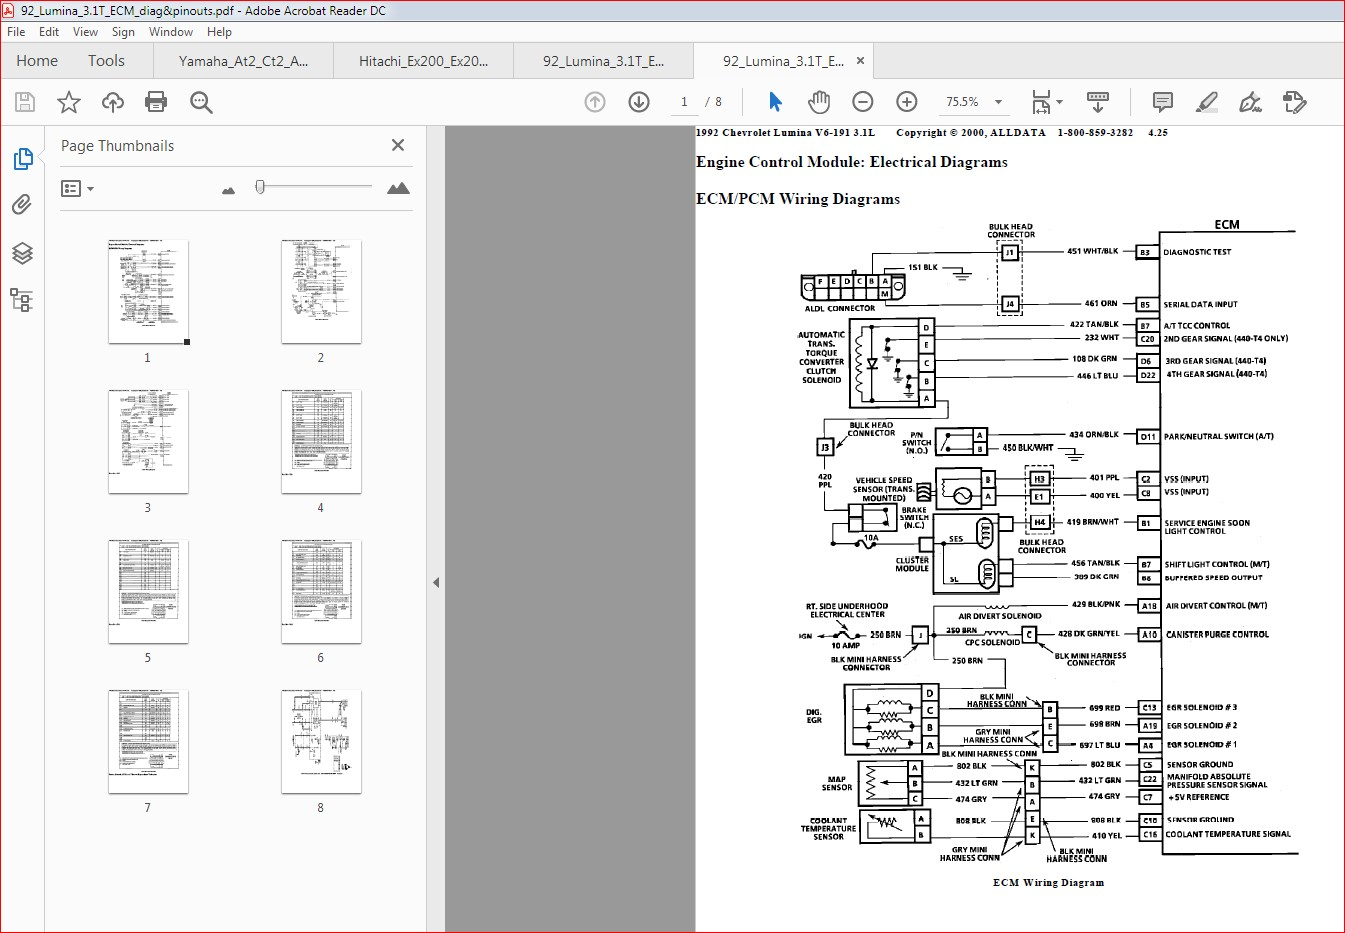 DIAGRAM] Accel Control Module Wiring Diagram Free Download FULL Version HD  Quality Free Download - PIPERDIAGRAM.AUTOFOLLOW.FRpiperdiagram.autofollow.fr